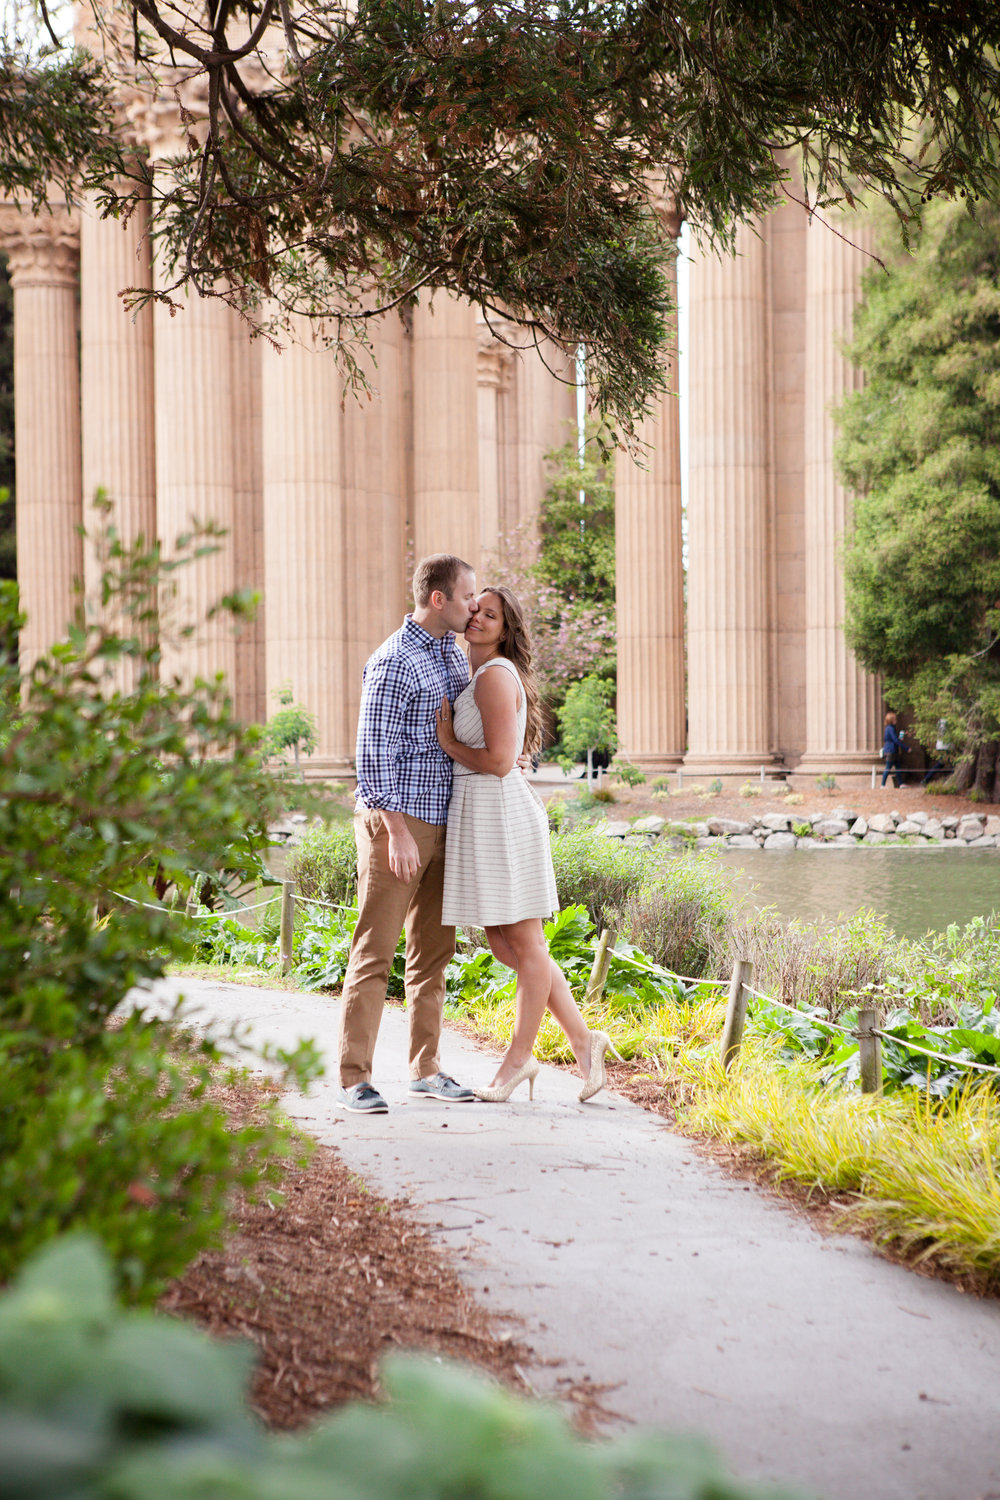 PalaceOfFineArts_Engagement photos-2651.jpg